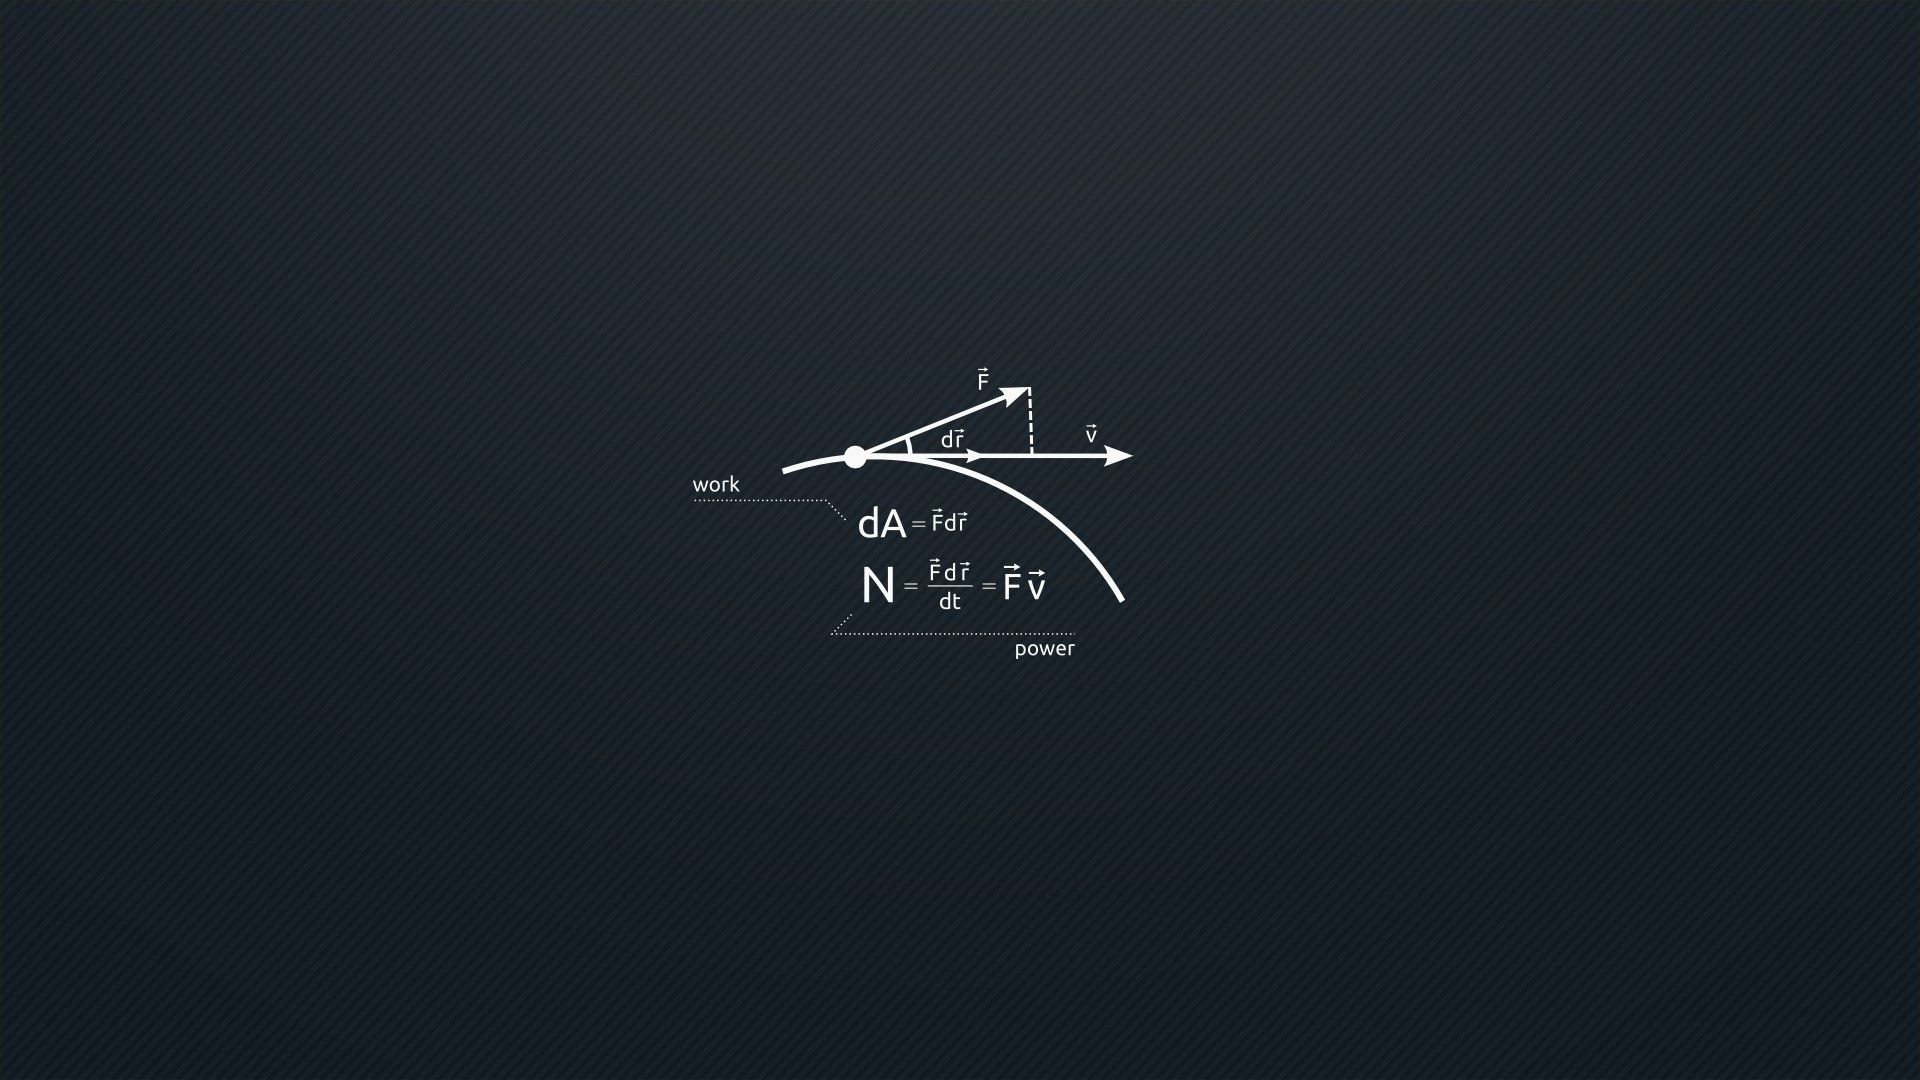 Maths 1920x1080 Minimalist Desktop Wallpaper Aesthetic Desktop Wallpaper Minimalist Wallpaper